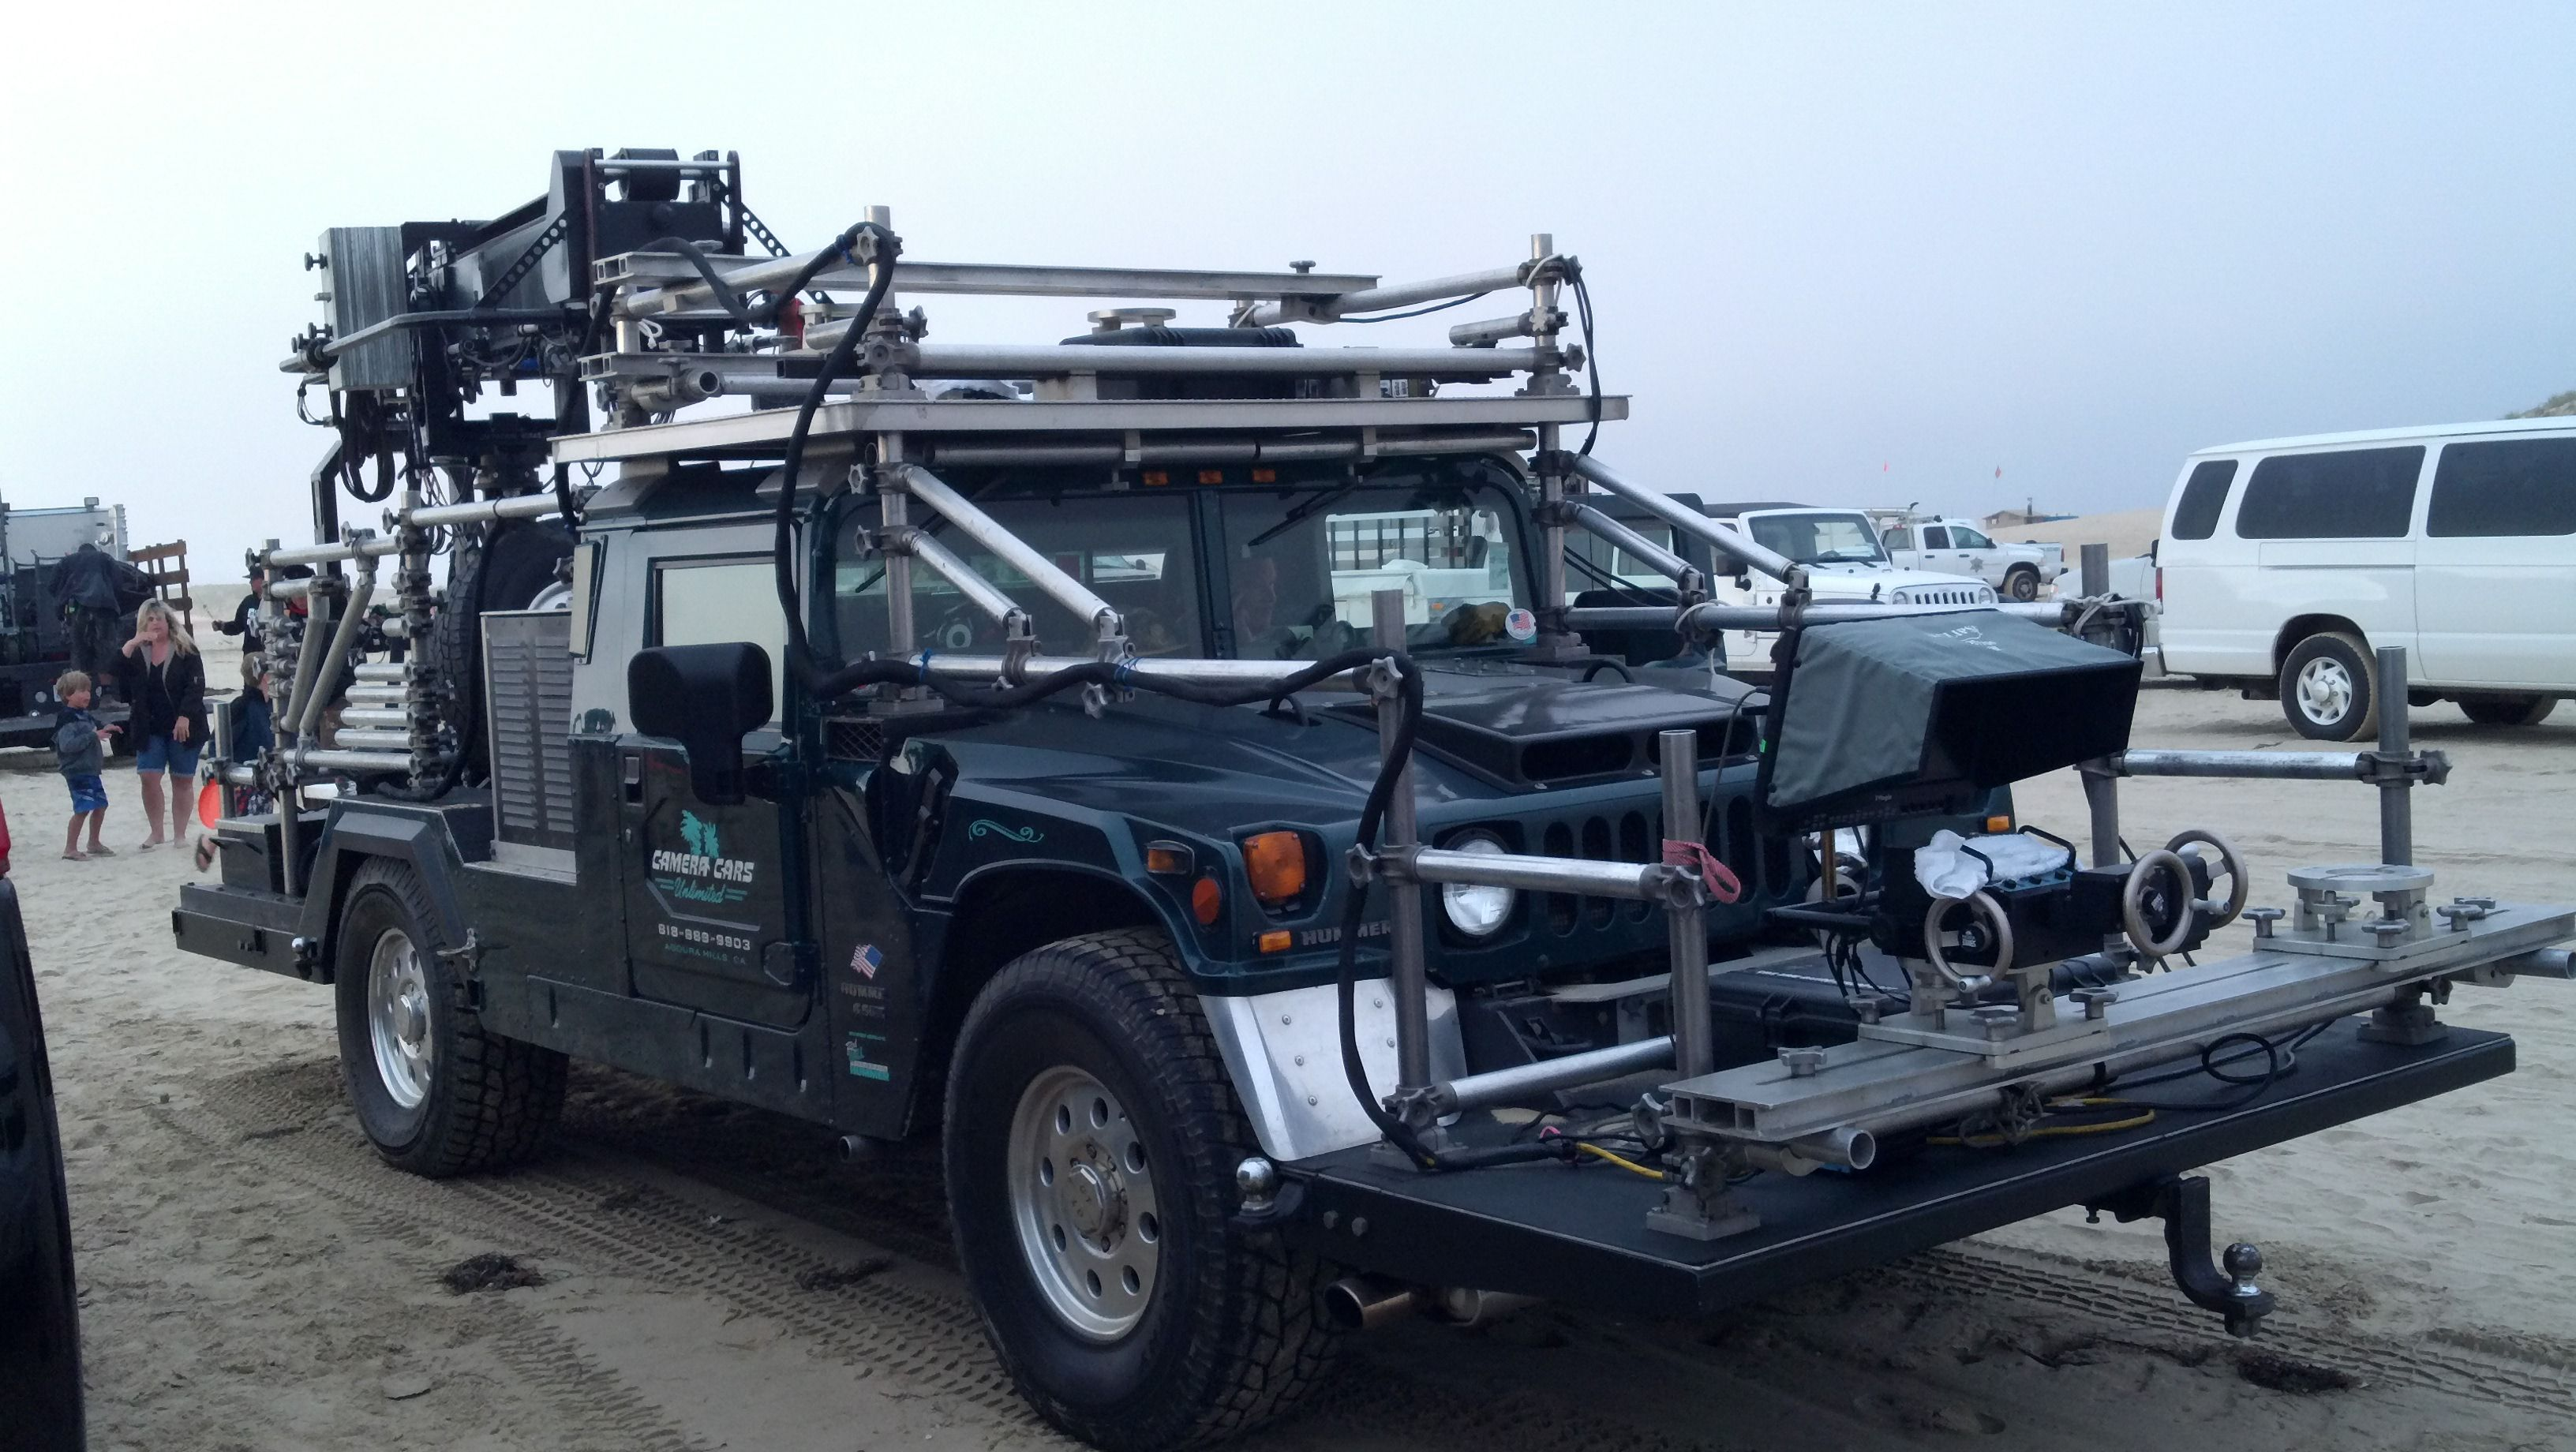 Hummer Camera truck out in the Pismo Dunes filming a mercial